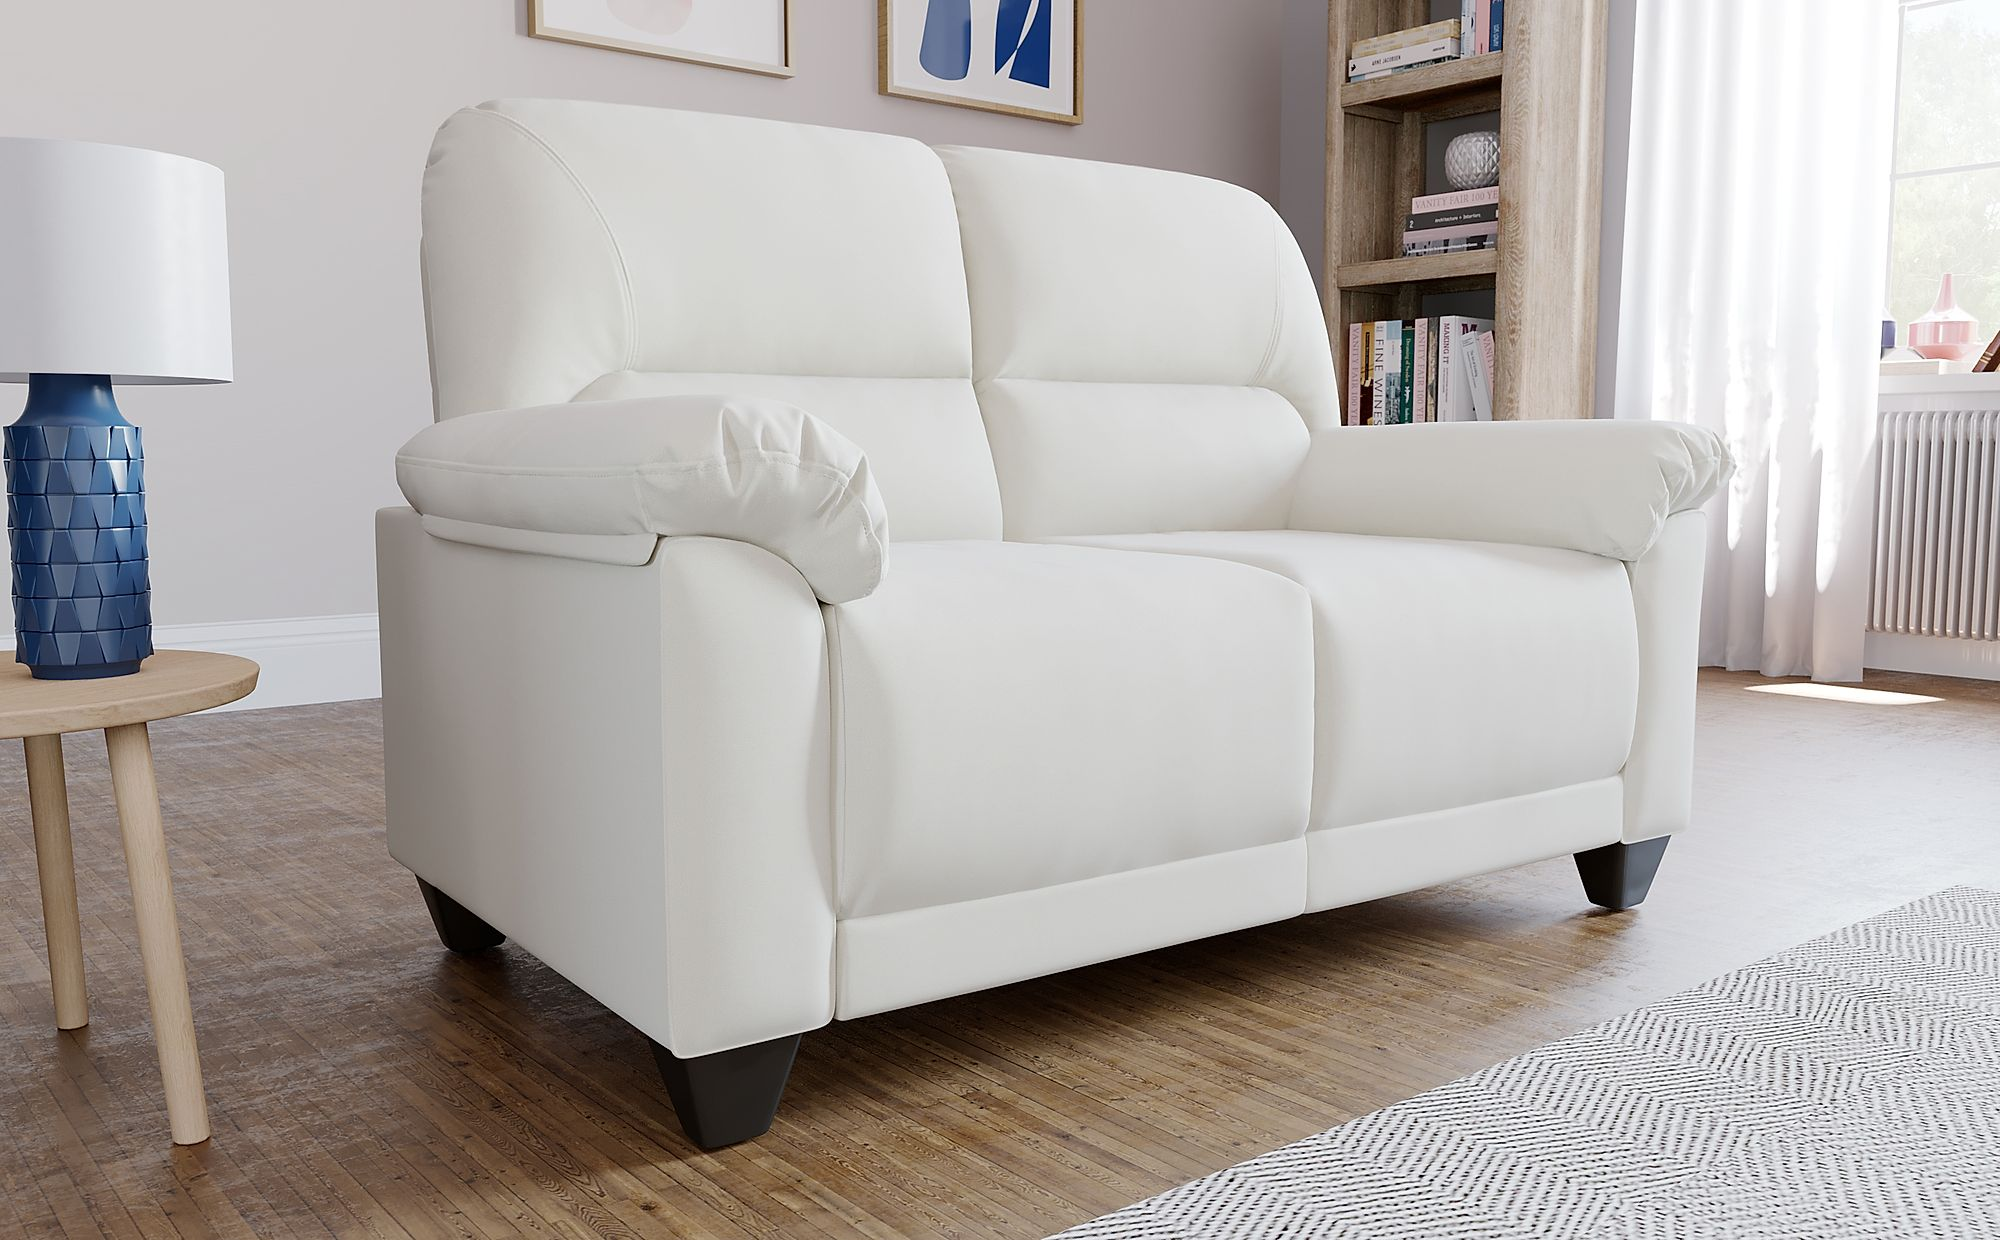 Kenton Small Ivory Leather 2 Seater Sofa | Furniture Choice